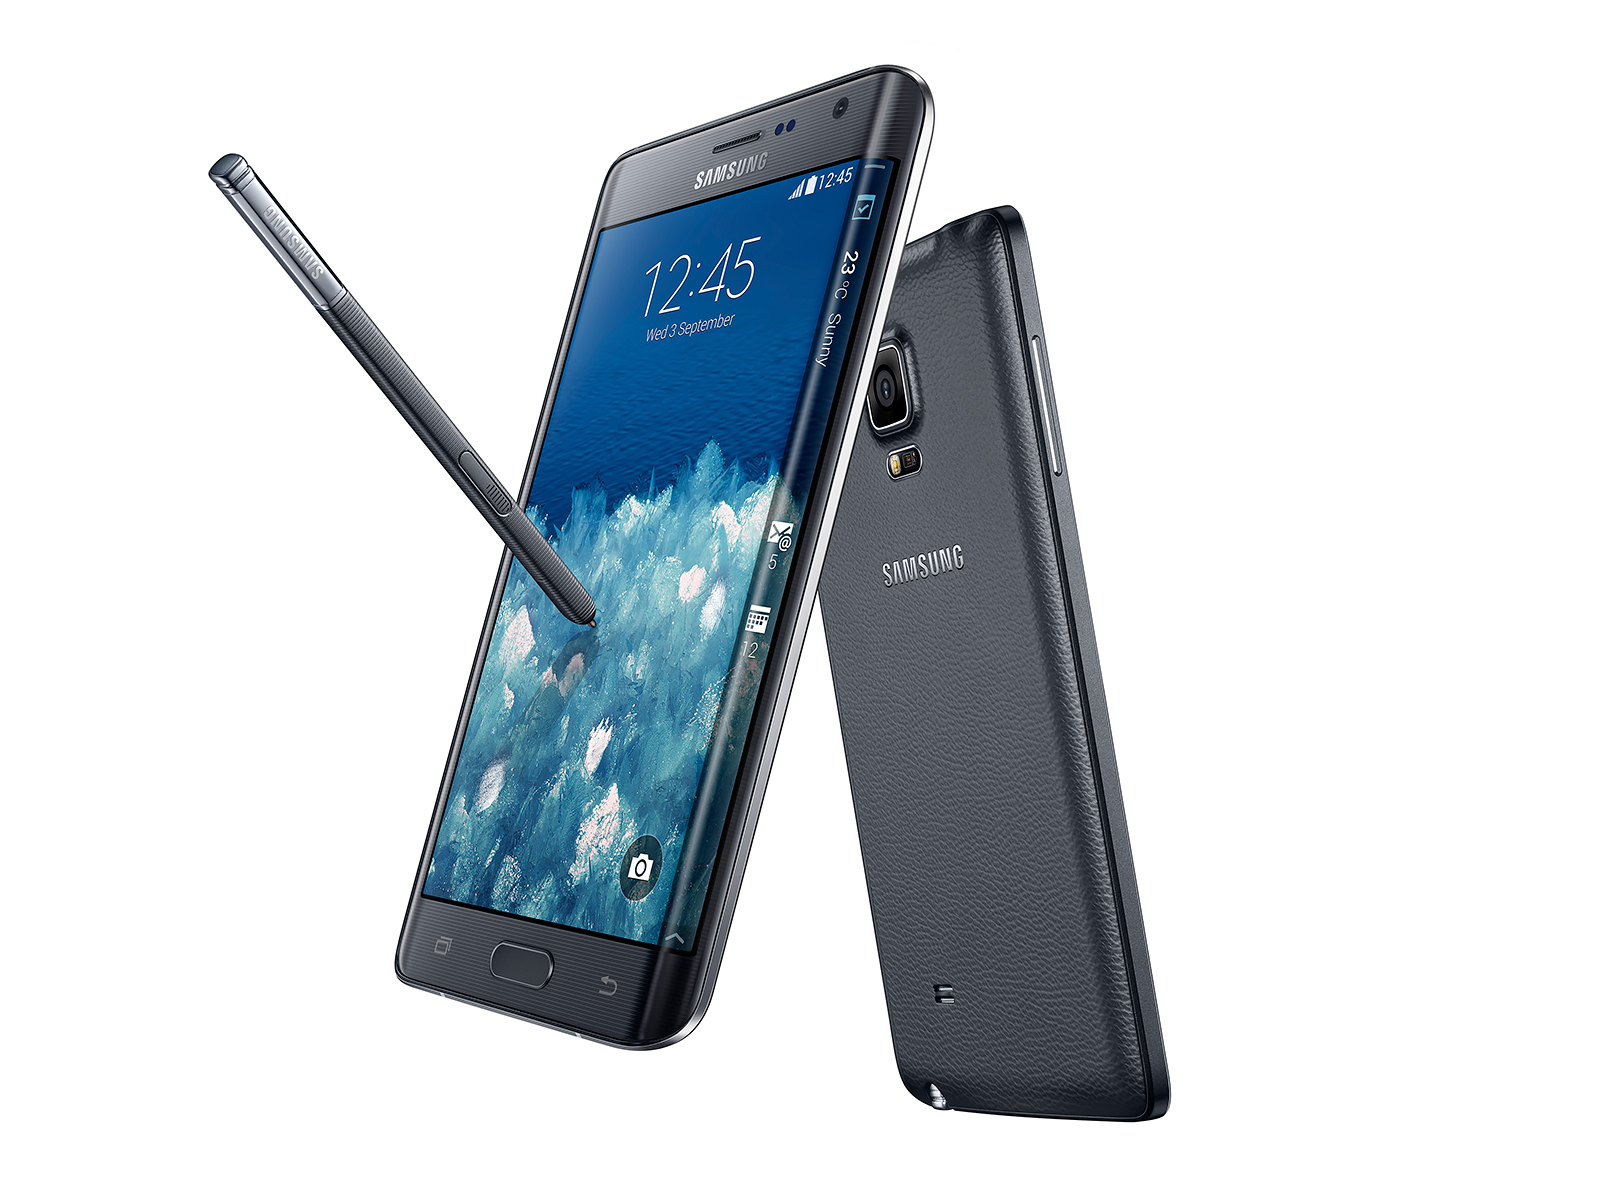 Samsung Galaxy Note Edge - черный цвет